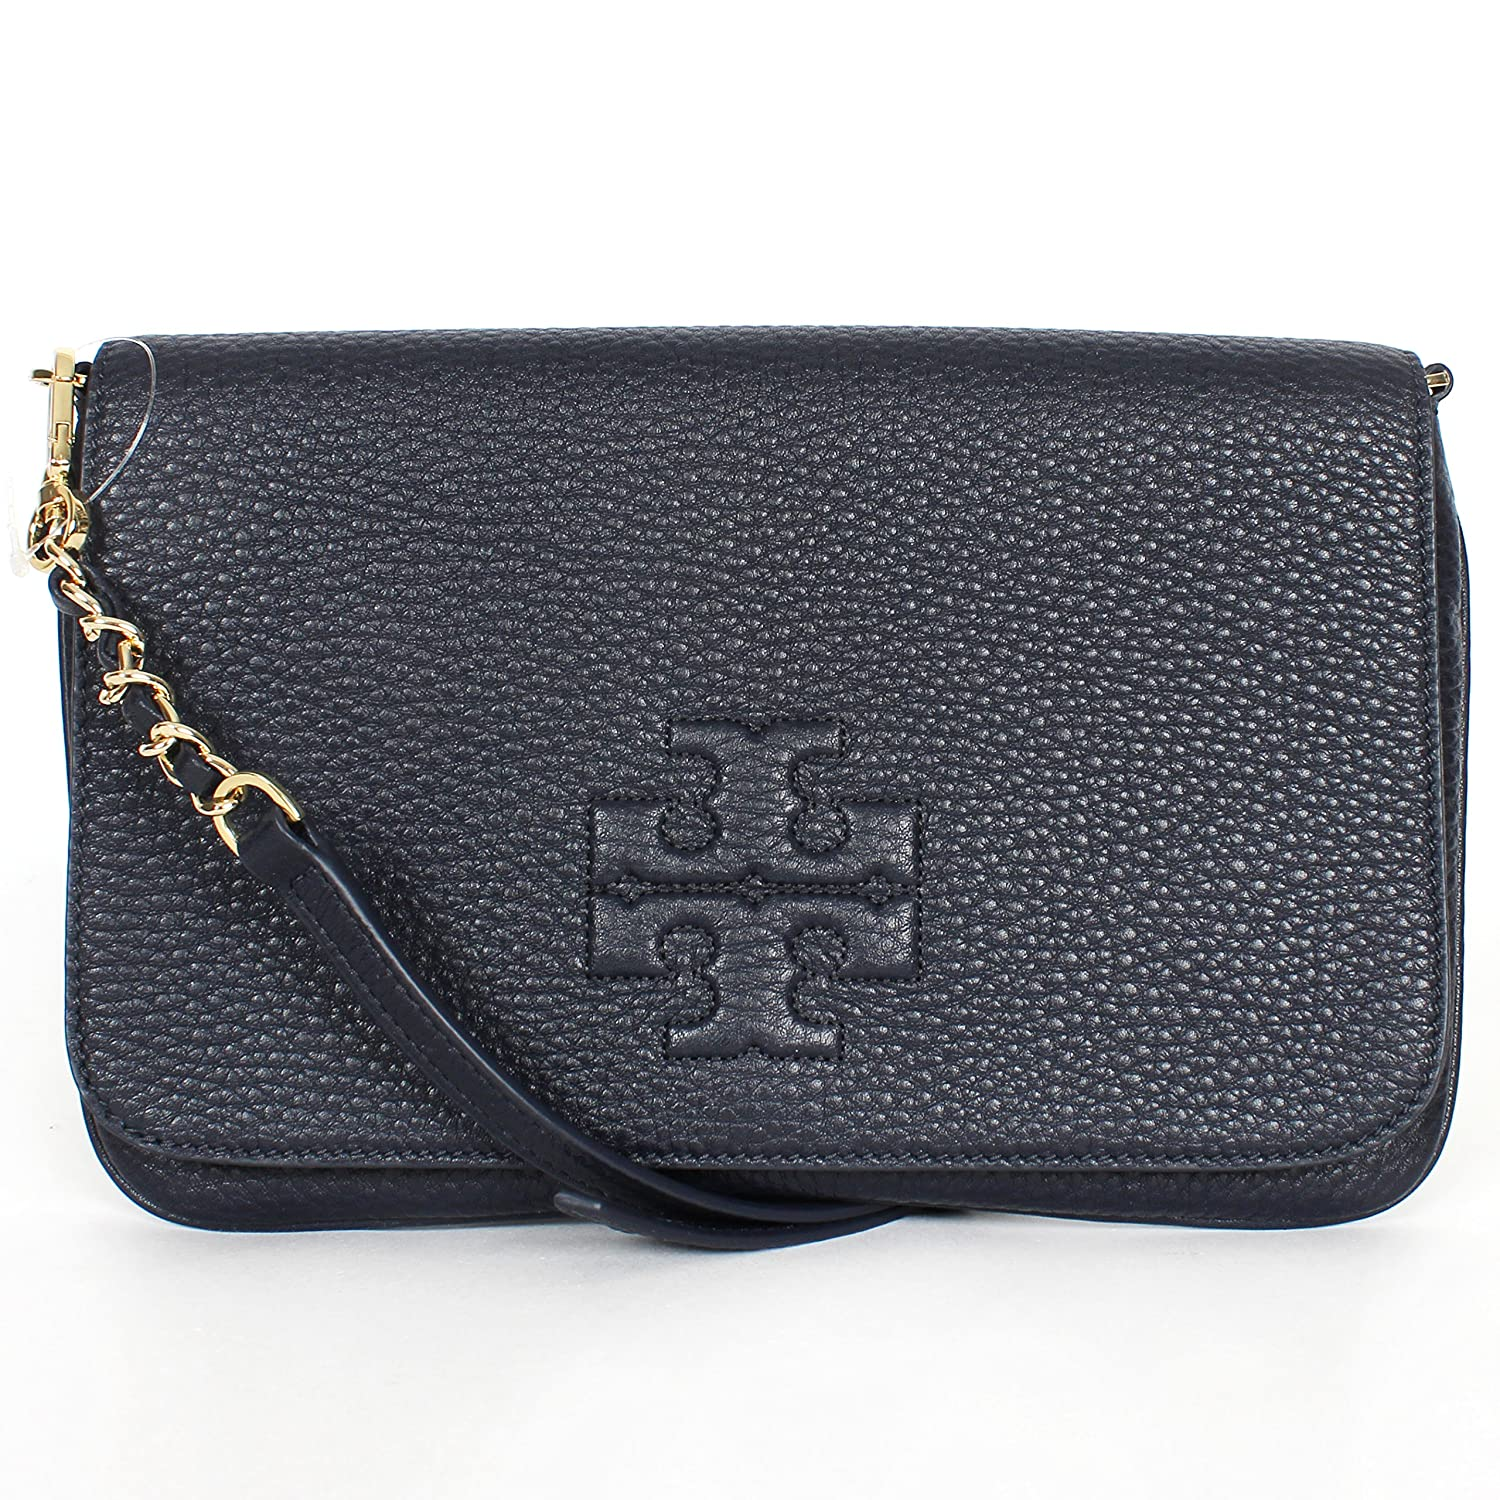 Tory Burch Thea Foldover Clutch Navy